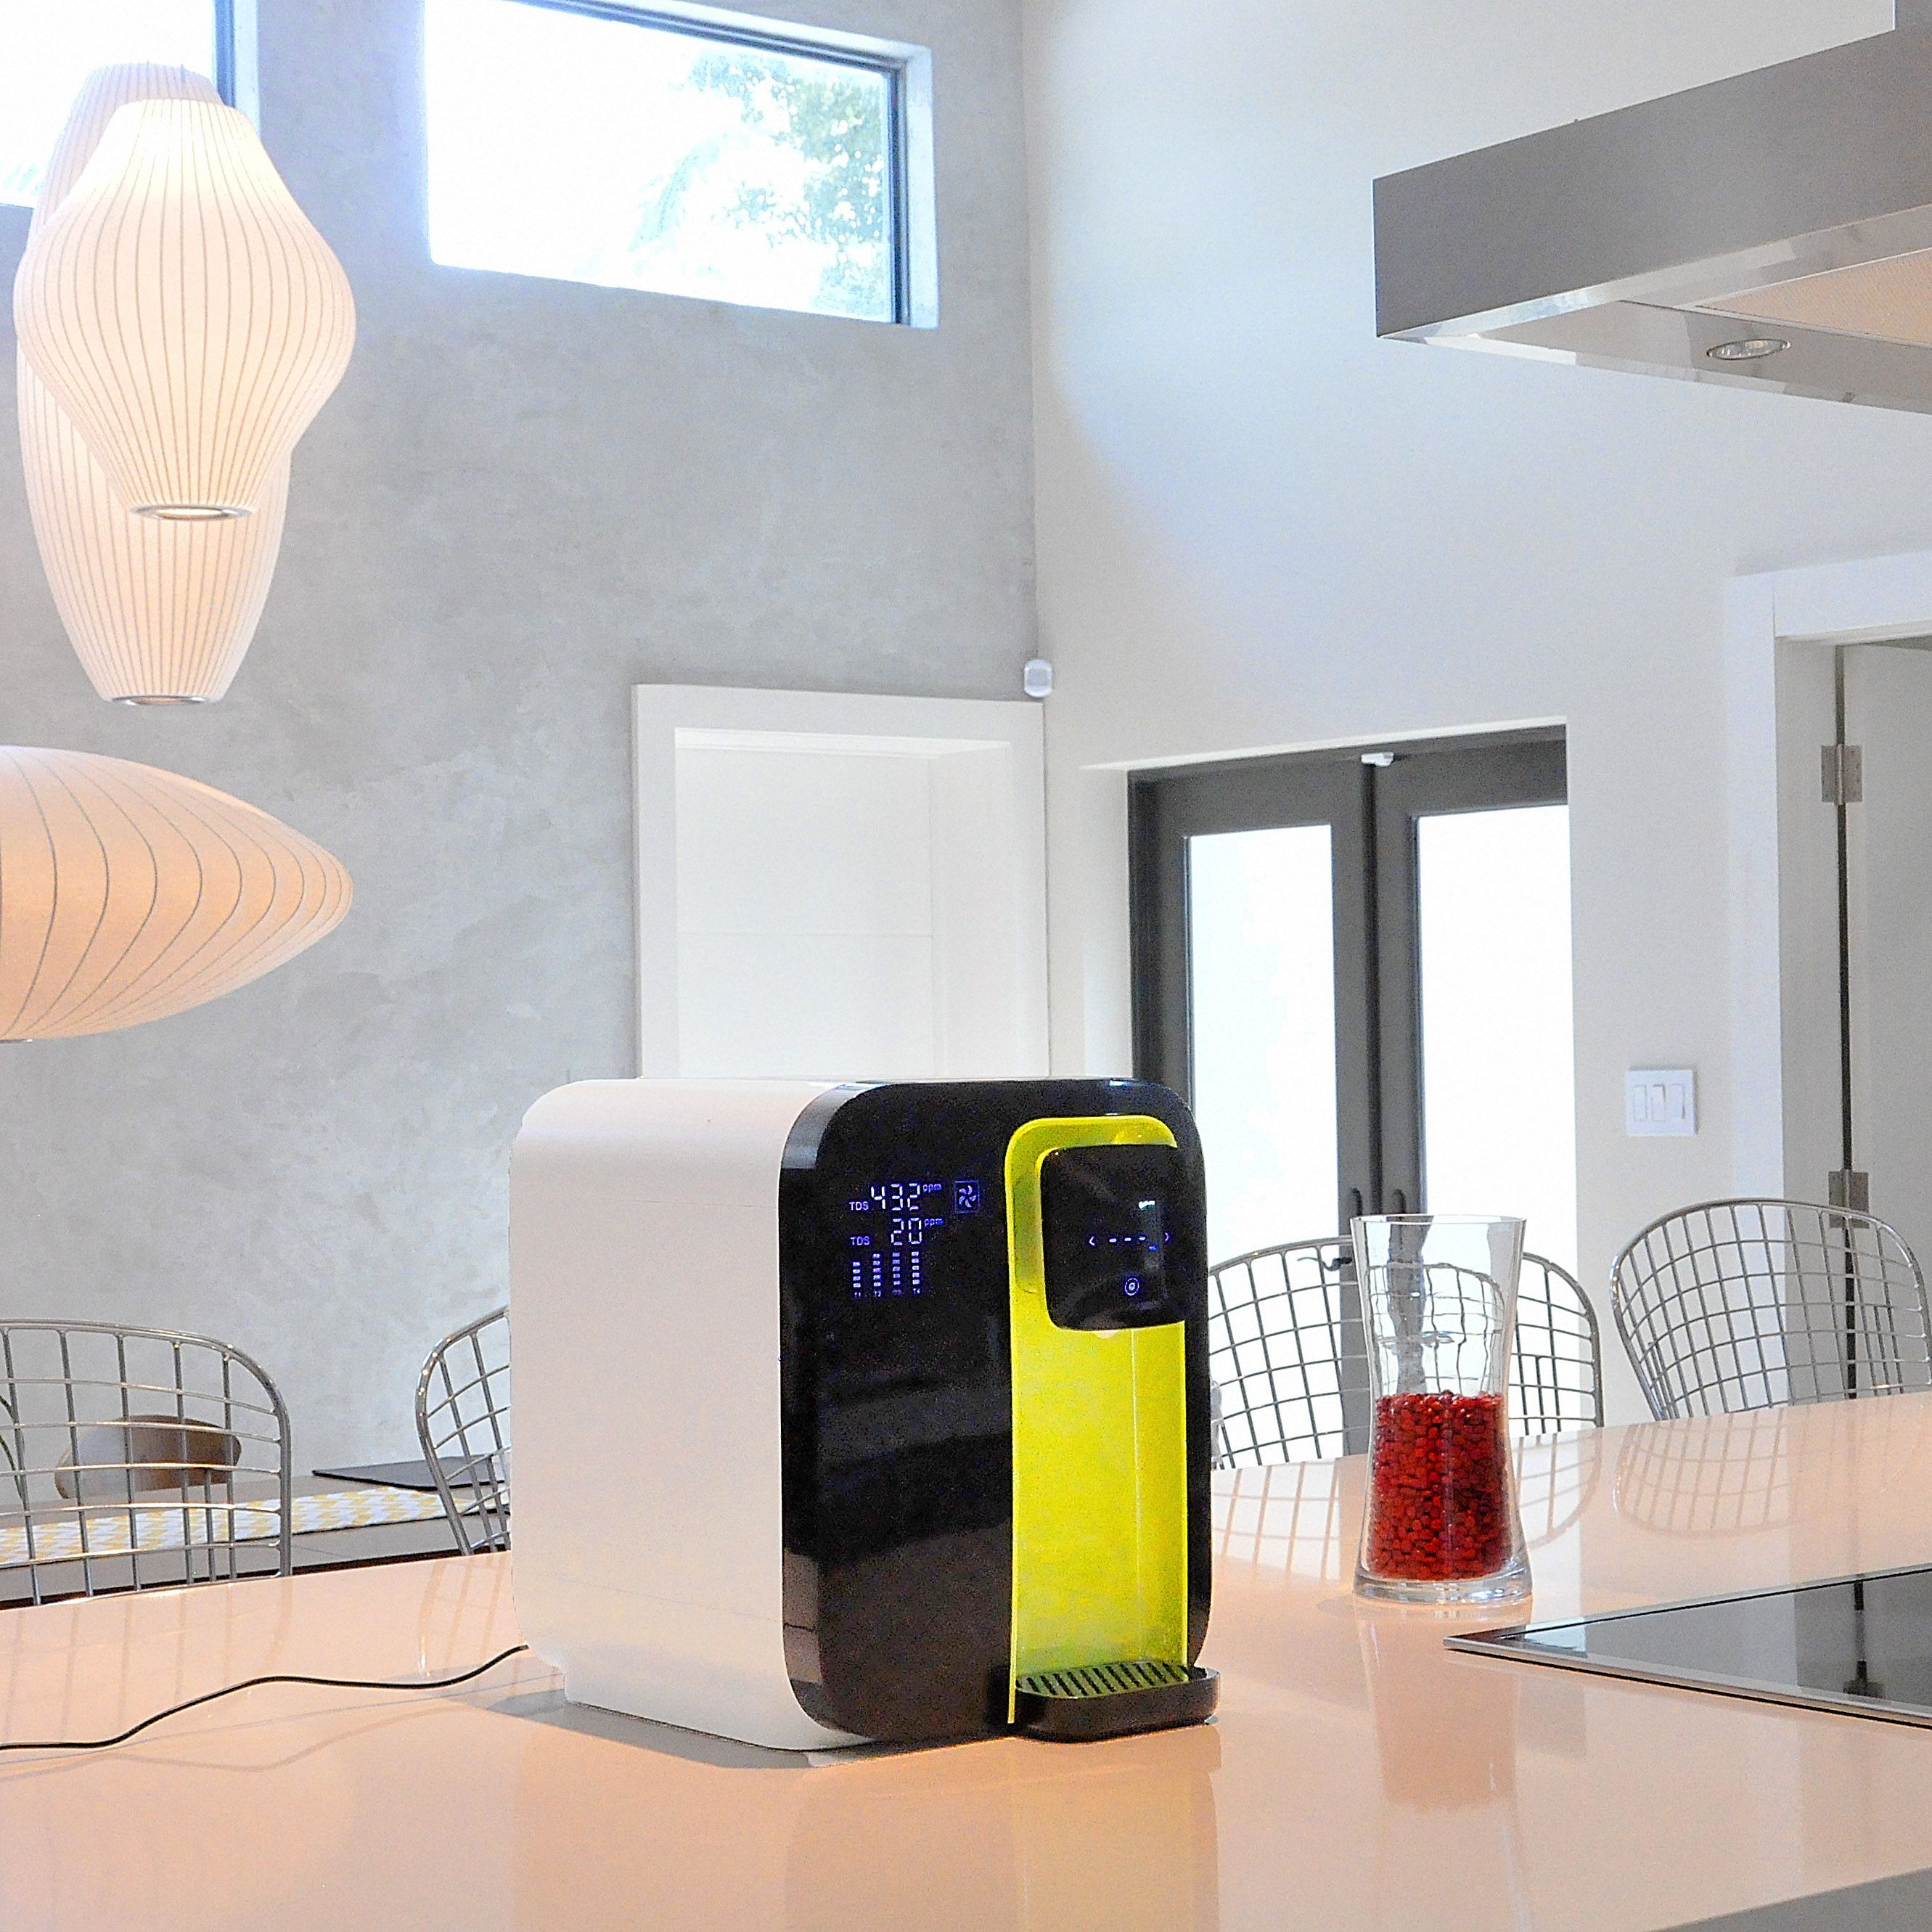 Amazing RO Water Purifier just sit on your kitchen. Just love love ...